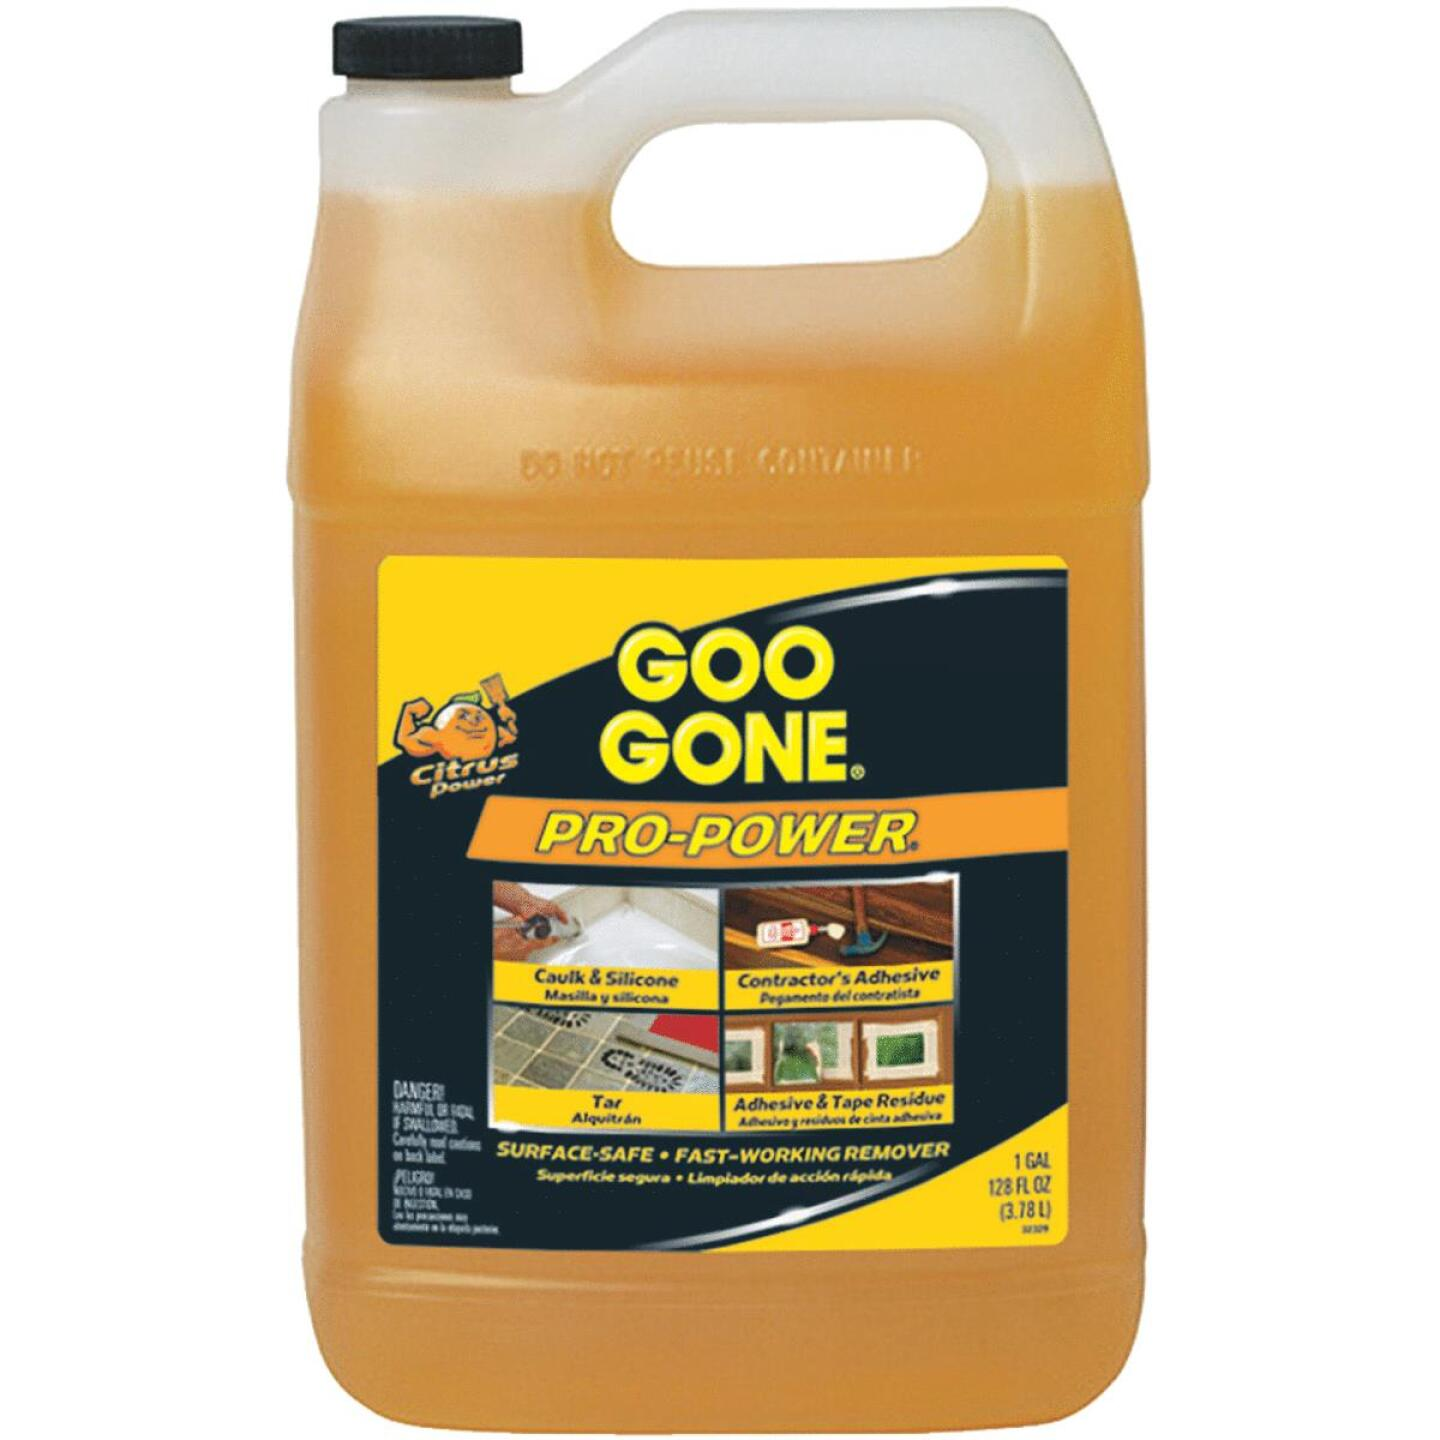 Goo Gone 1 Gal. Pro-Power Adhesive Remover Image 44